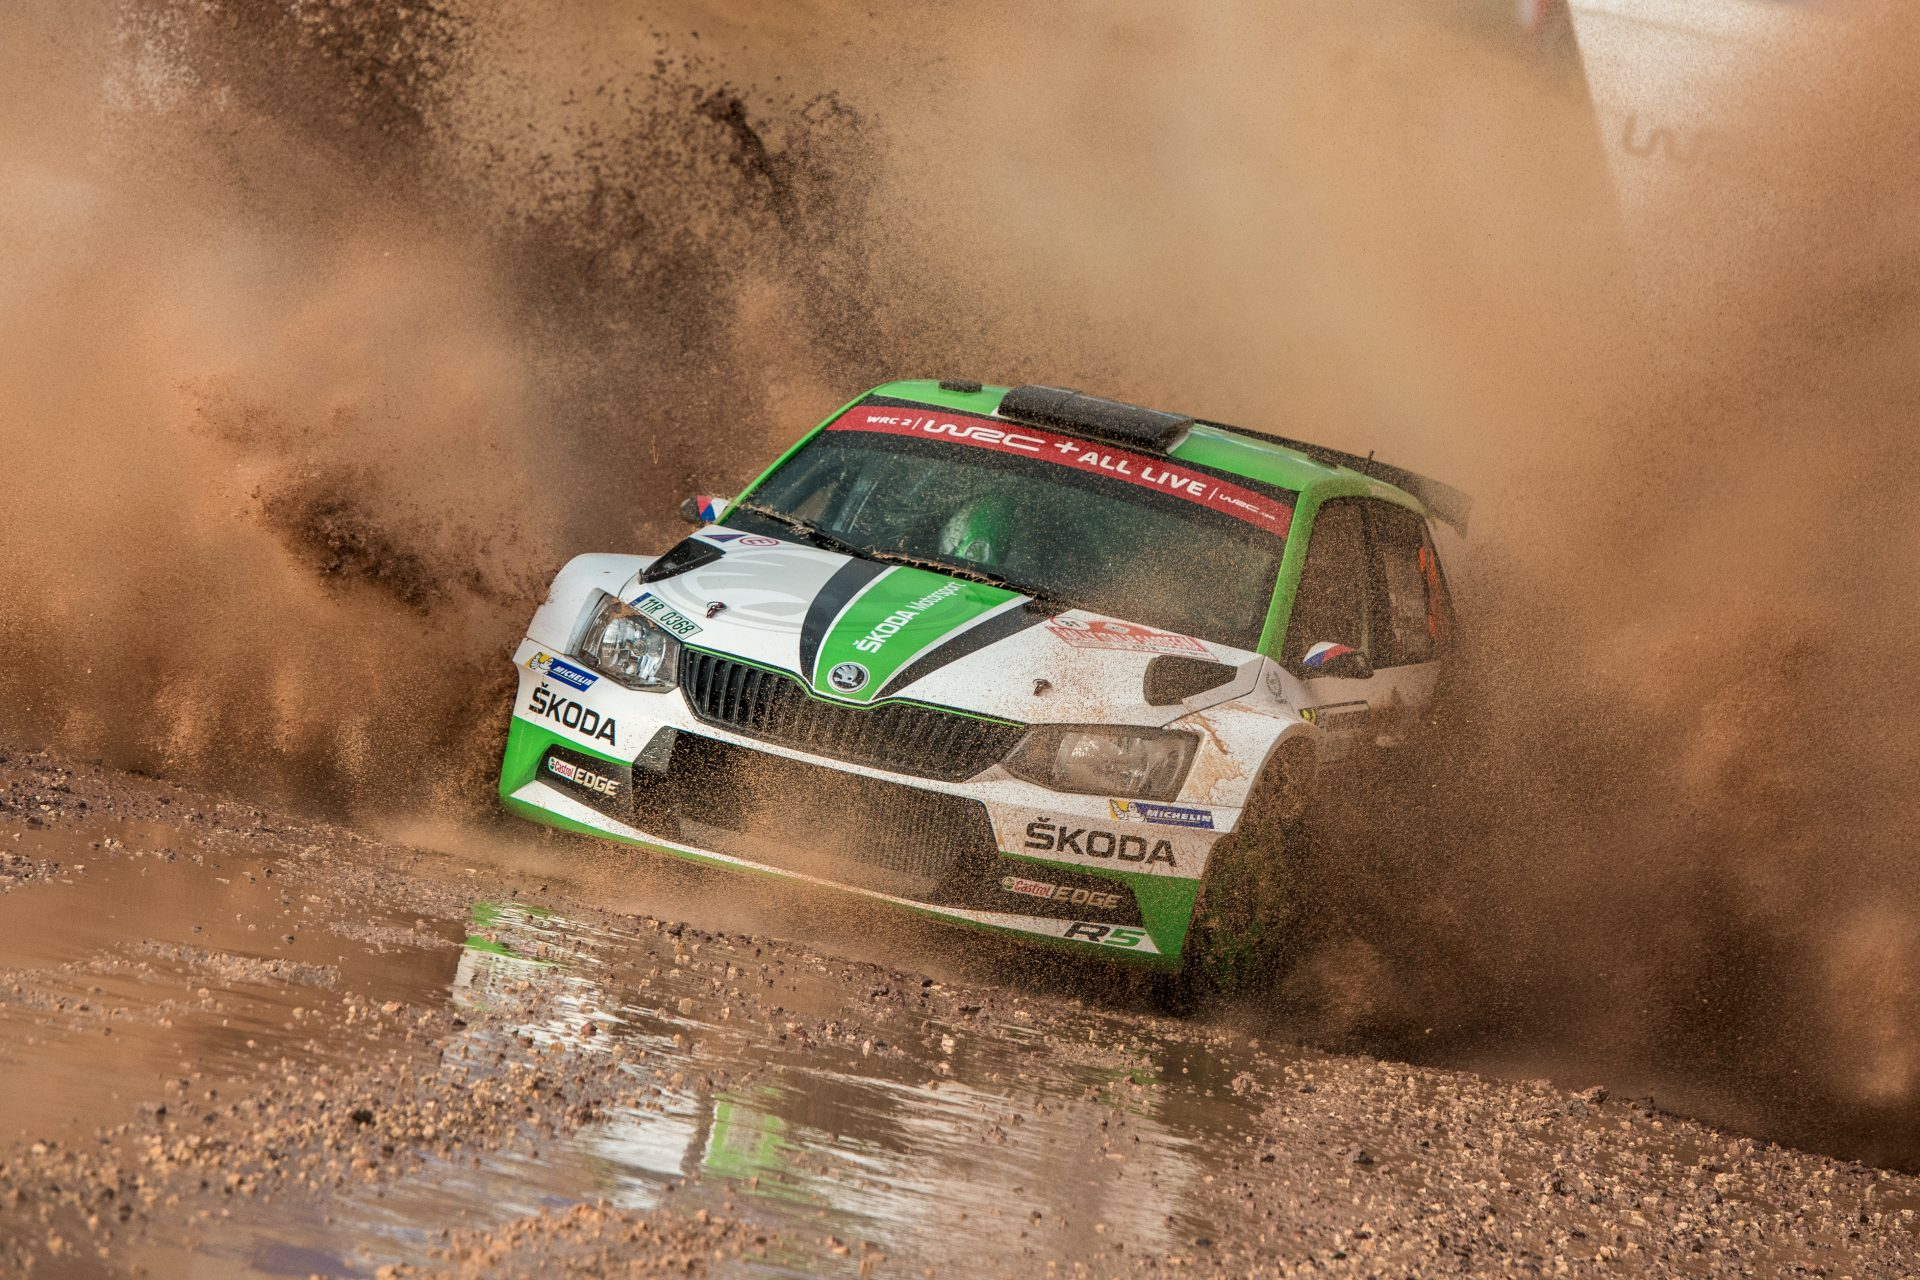 Rally Italia Sardegna 2018: The Latest News and Results [Updated Regularly]